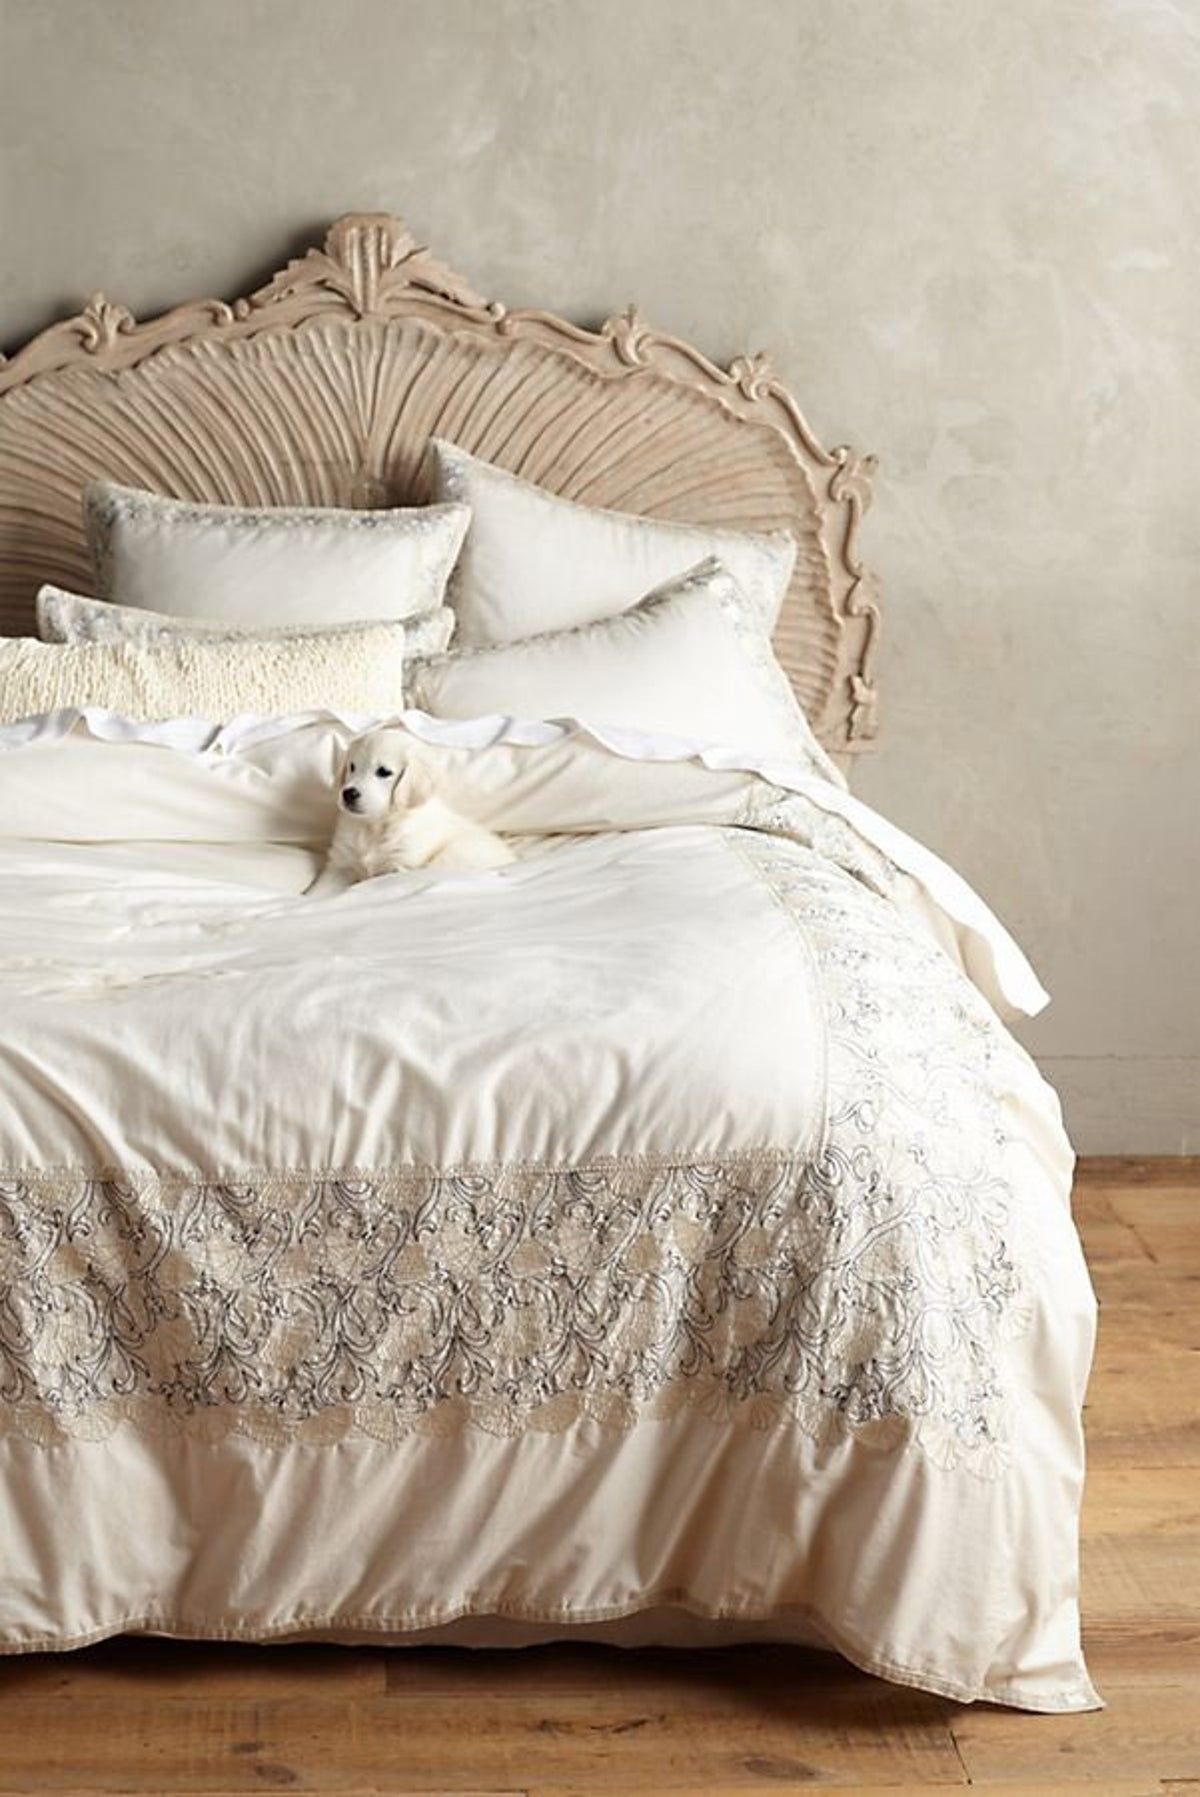 Anthropologie Hilvi Q Duvet 2 Euro Shams In 2020 Anthropologie